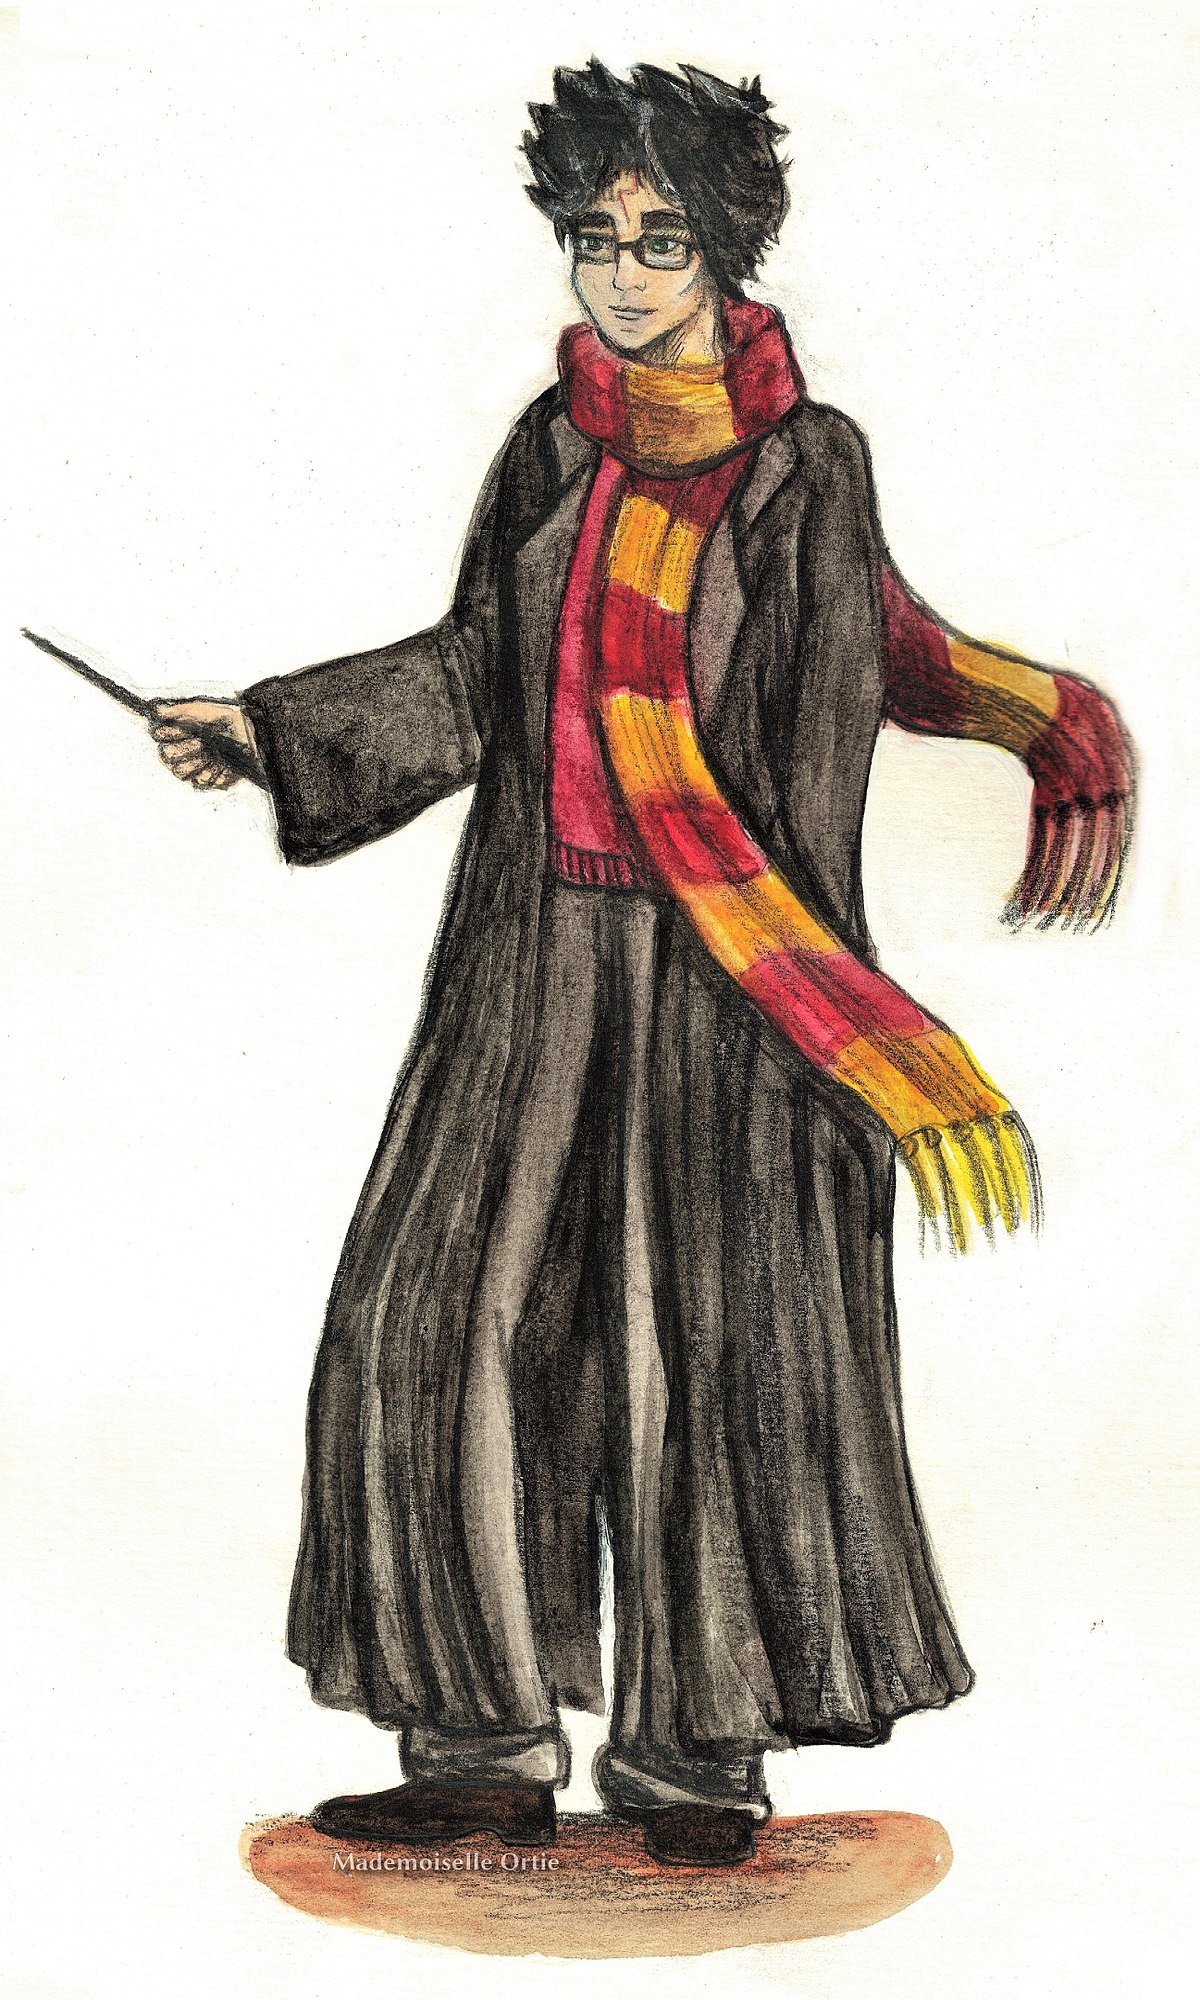 Harry Potter - Wikidata